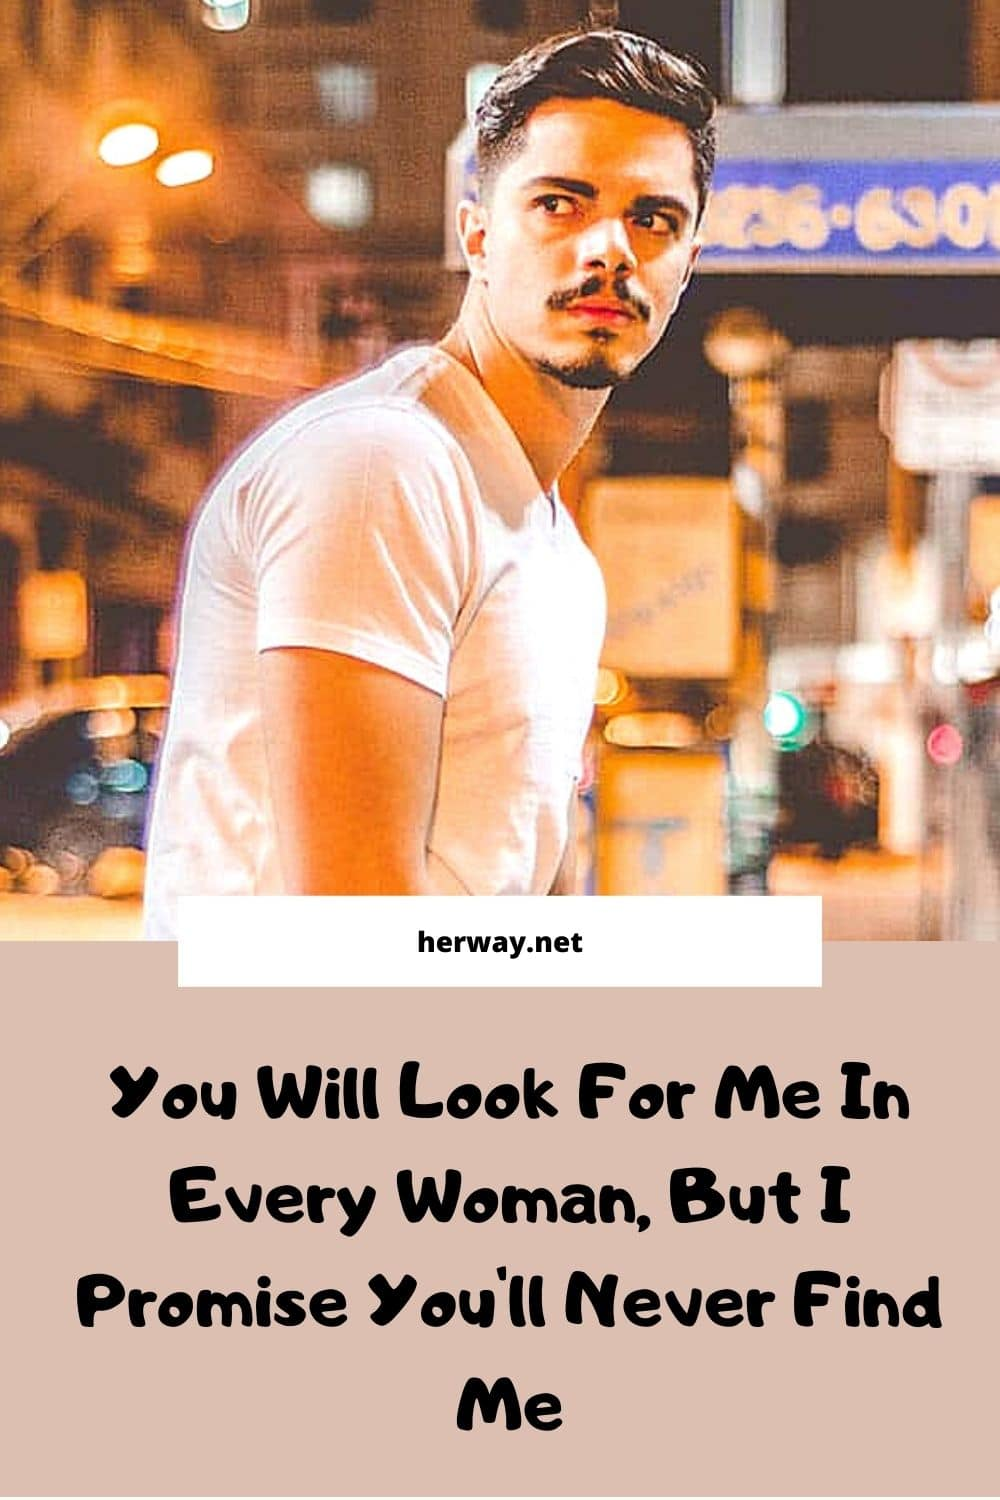 You Will Look For Me In Every Woman, But I Promise You'll Never Find Me